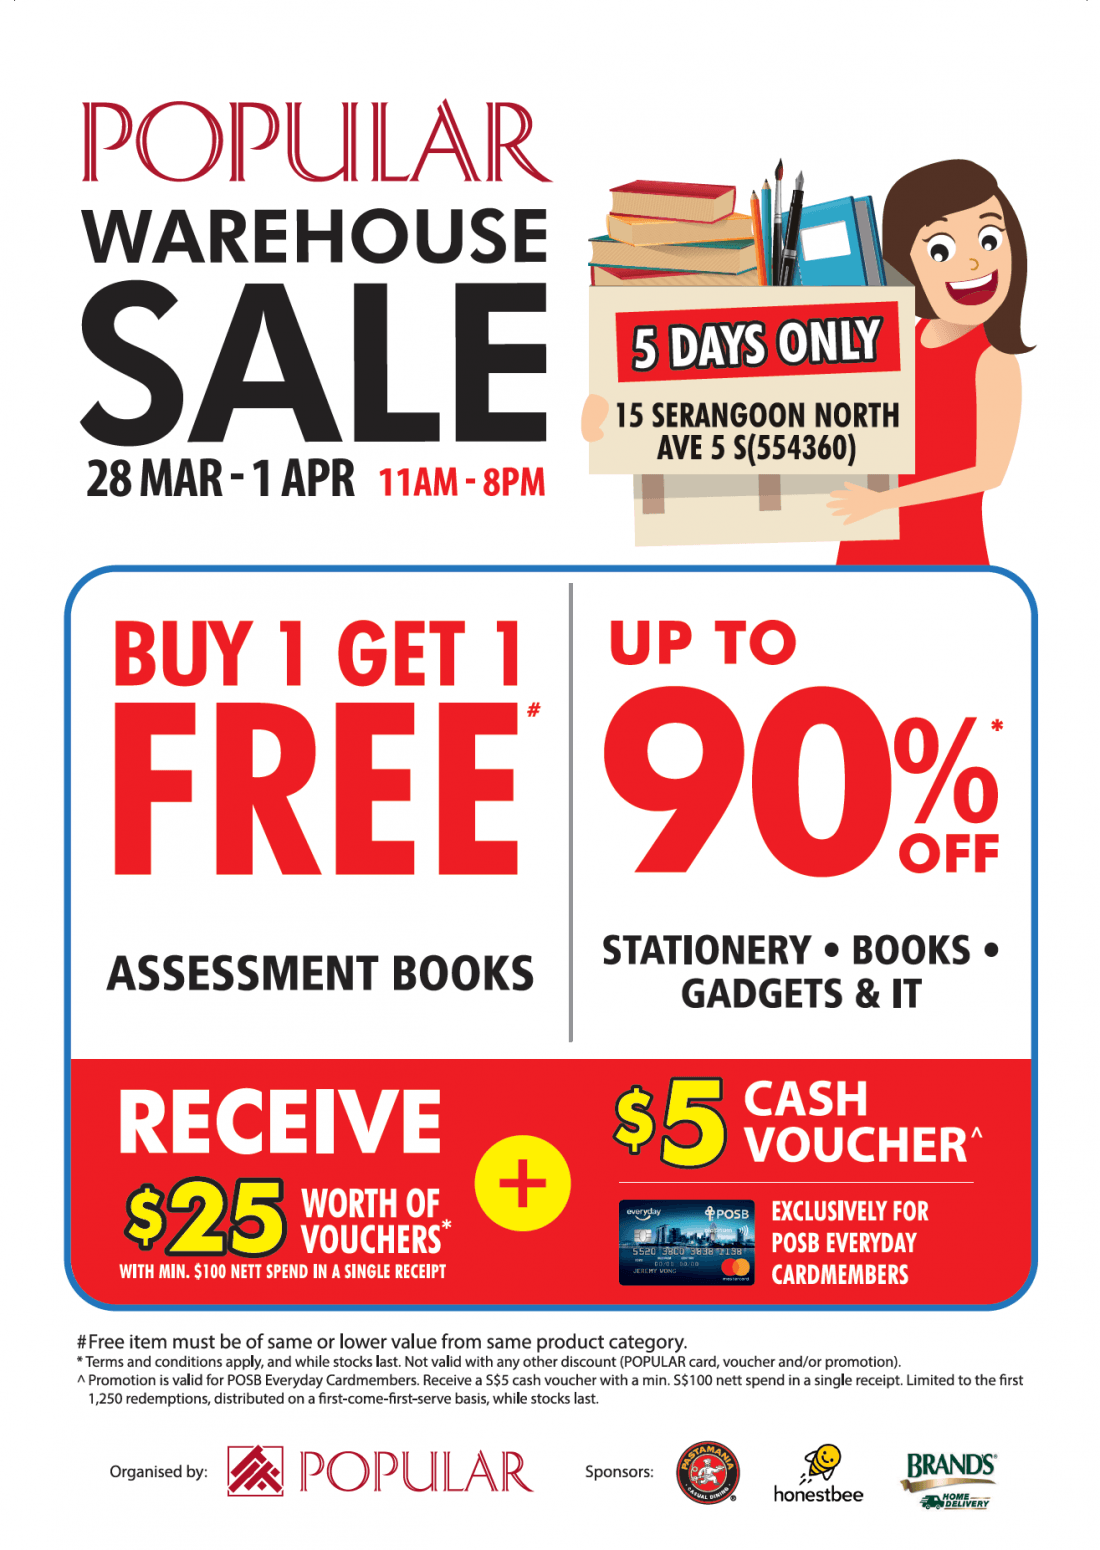 POPULAR Warehouse Sale